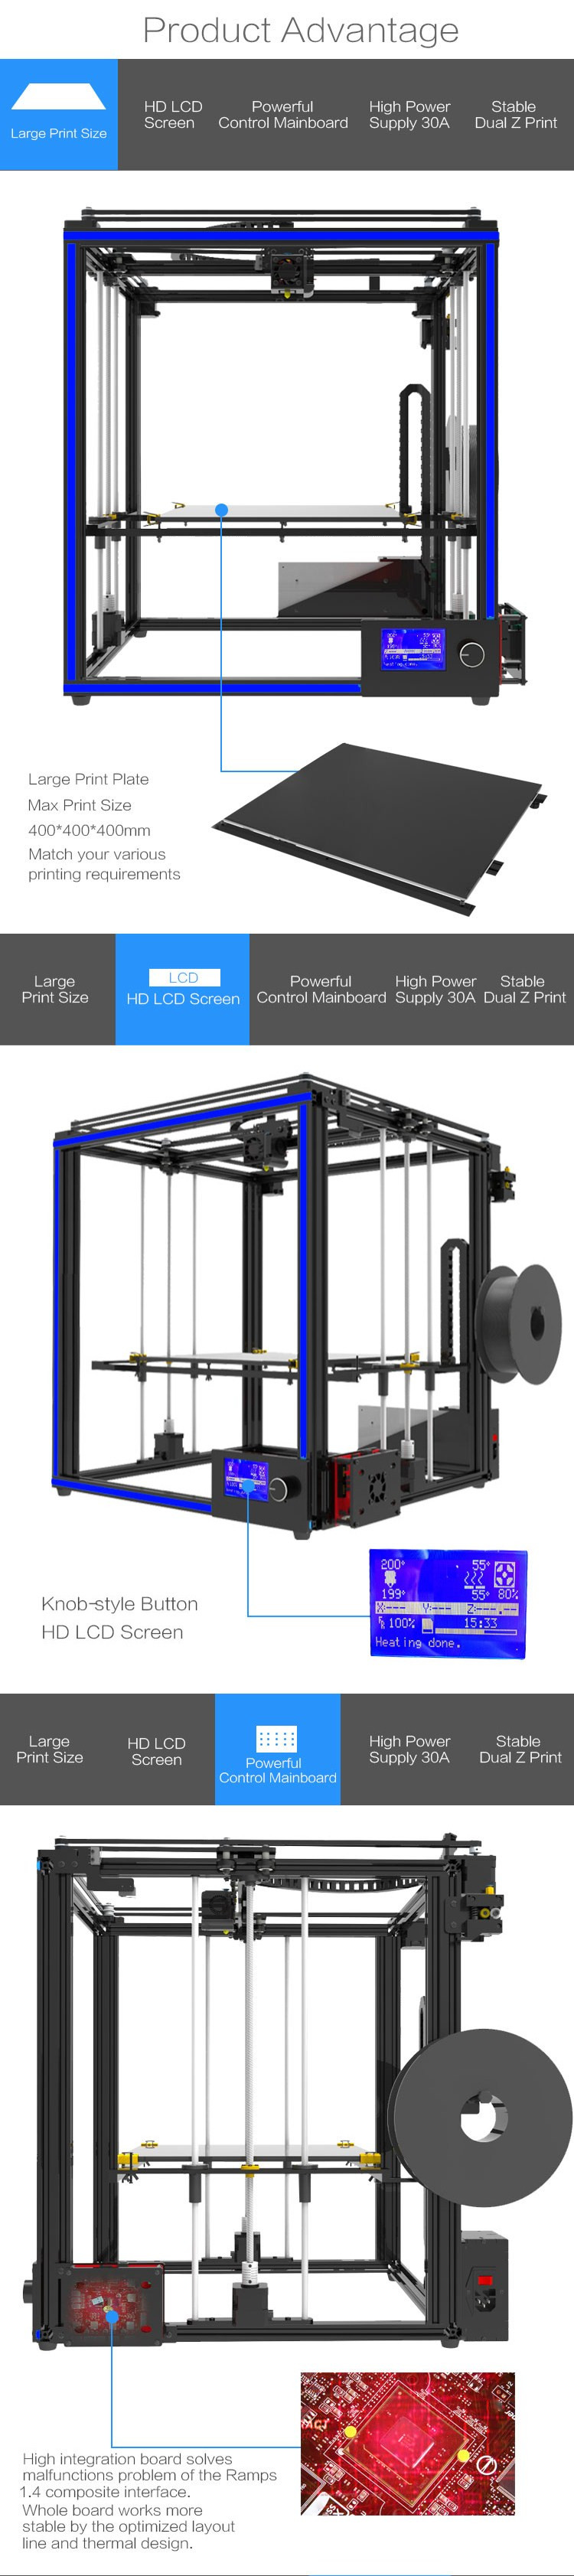 TRONXY® X5S-400 DIY Aluminum 3D Printer Kit 400*400*400mm Large Printing  Size With Dual Z-axis Rod/HD LCD Screen/Double Fan 1 75mm 0 4mm Nozzle